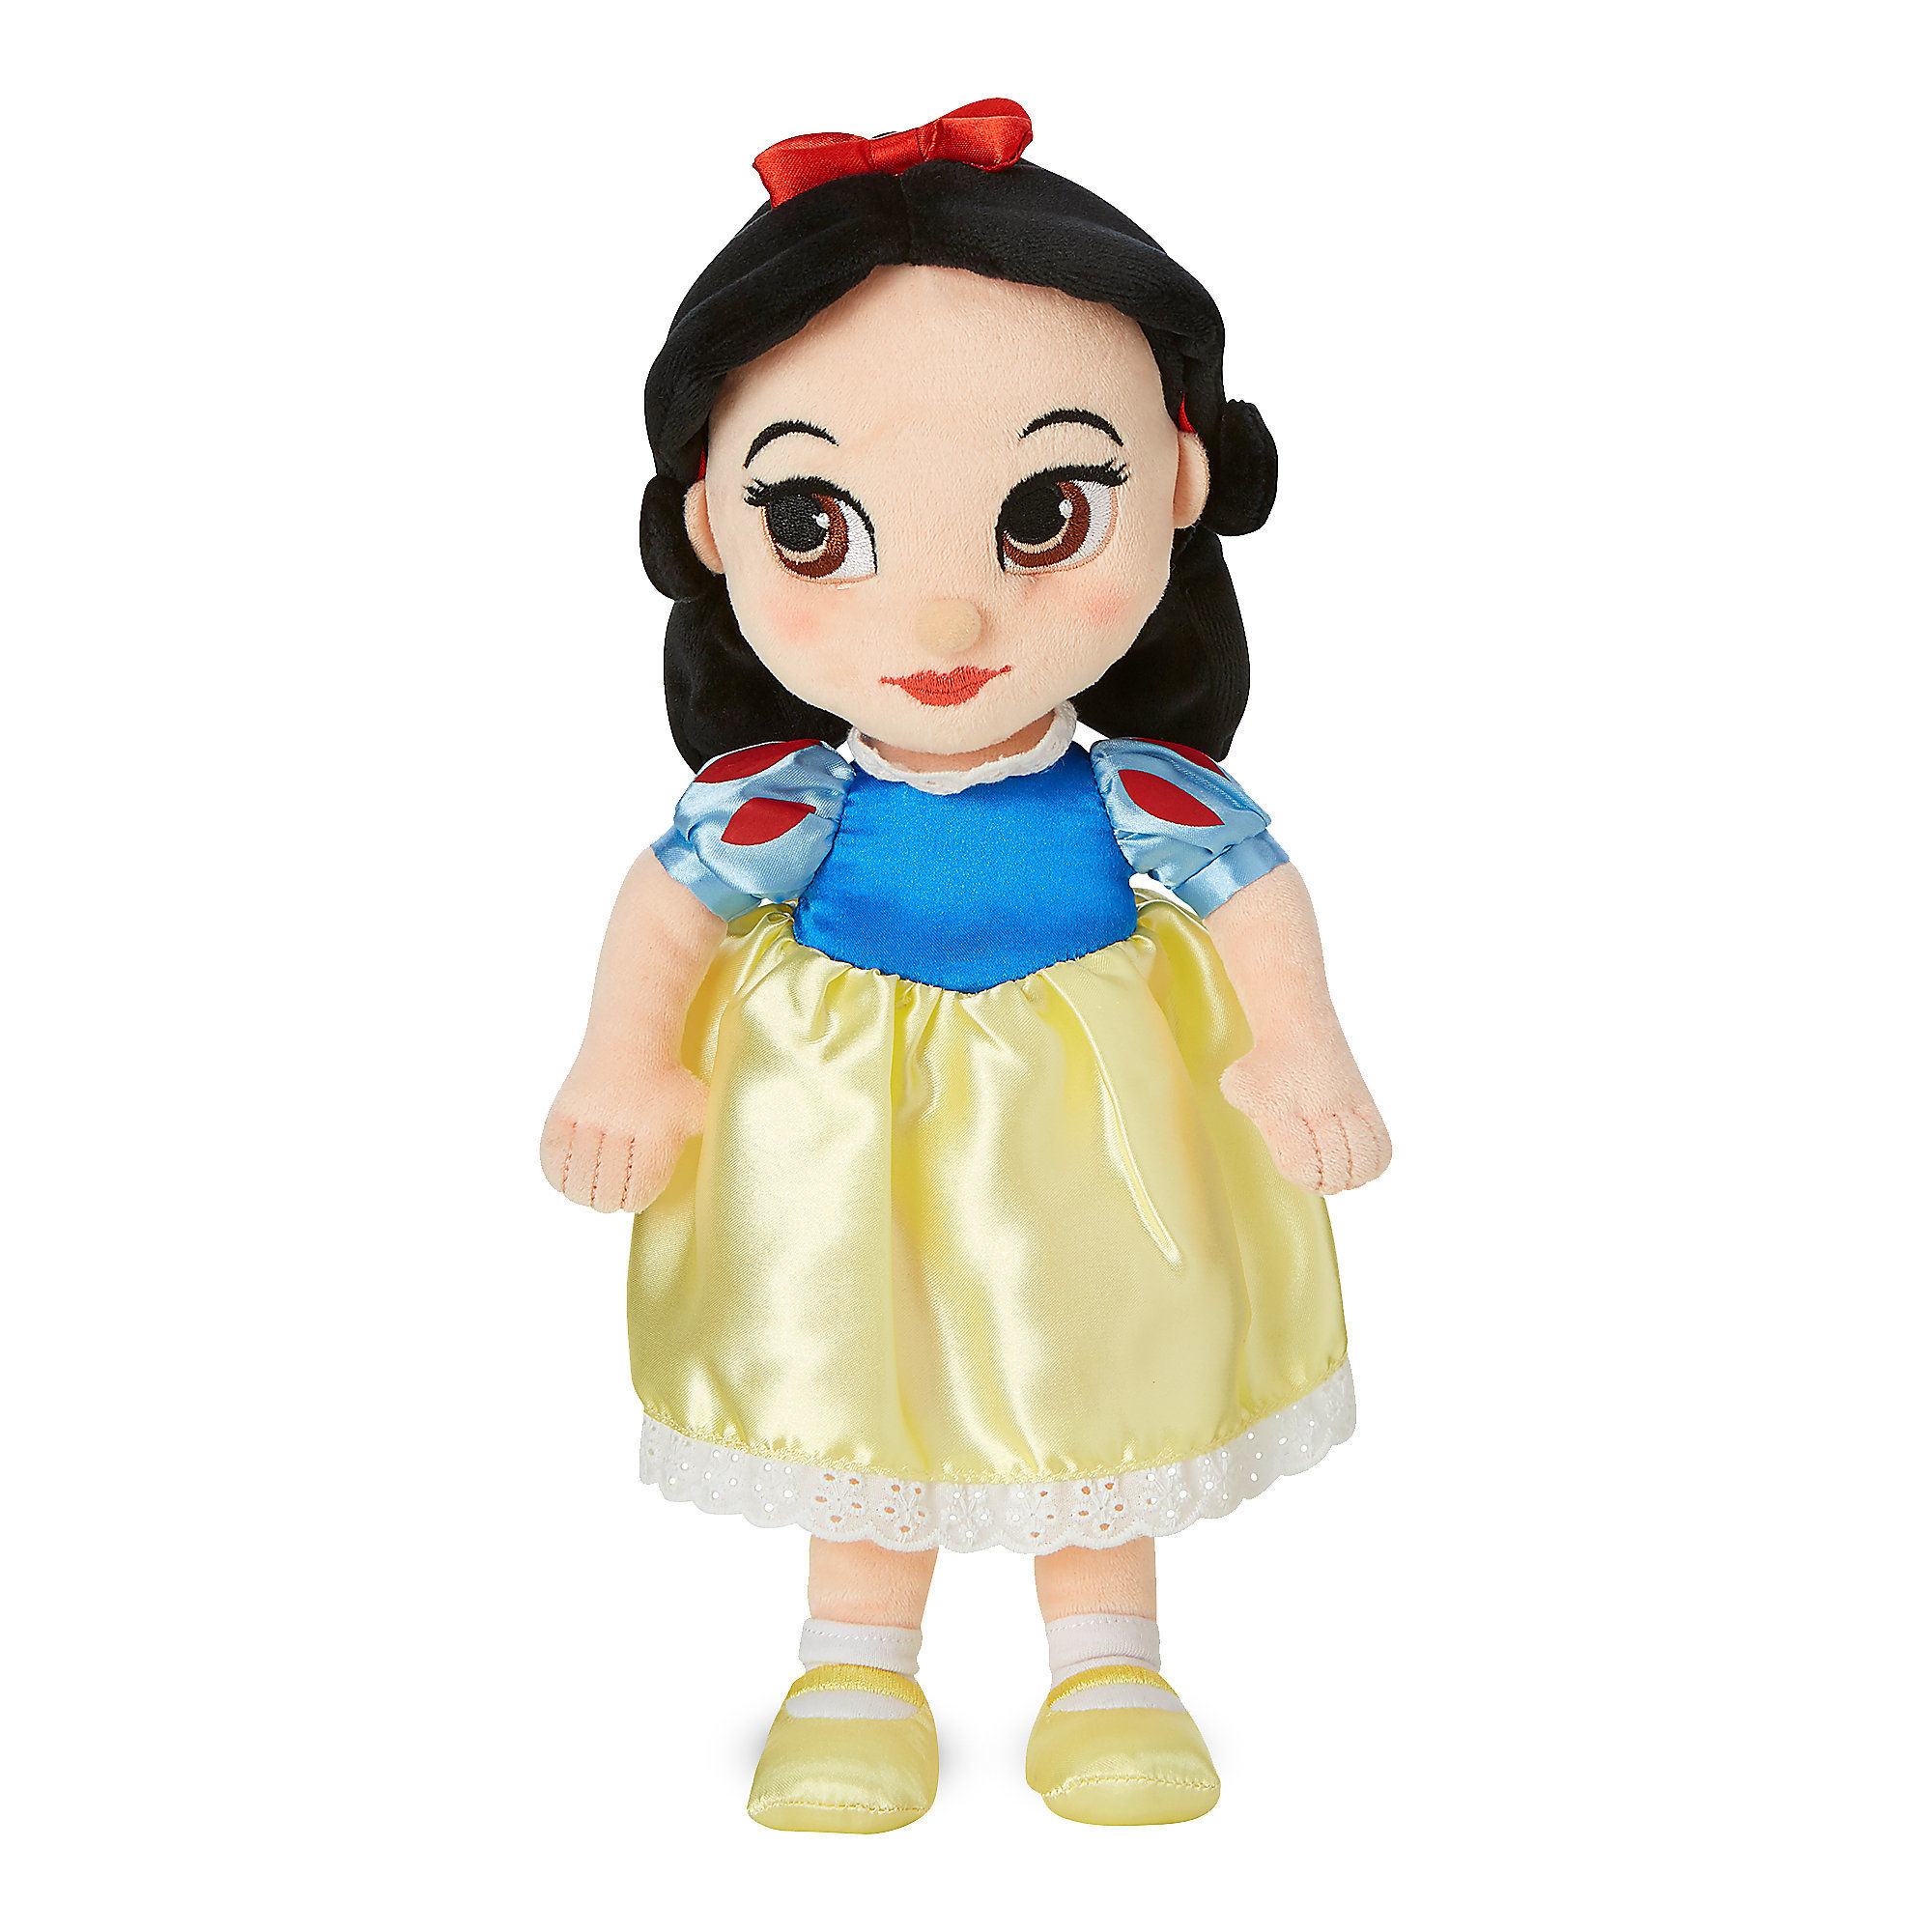 Disney Princess Animators' Collection Snow White Plush Doll